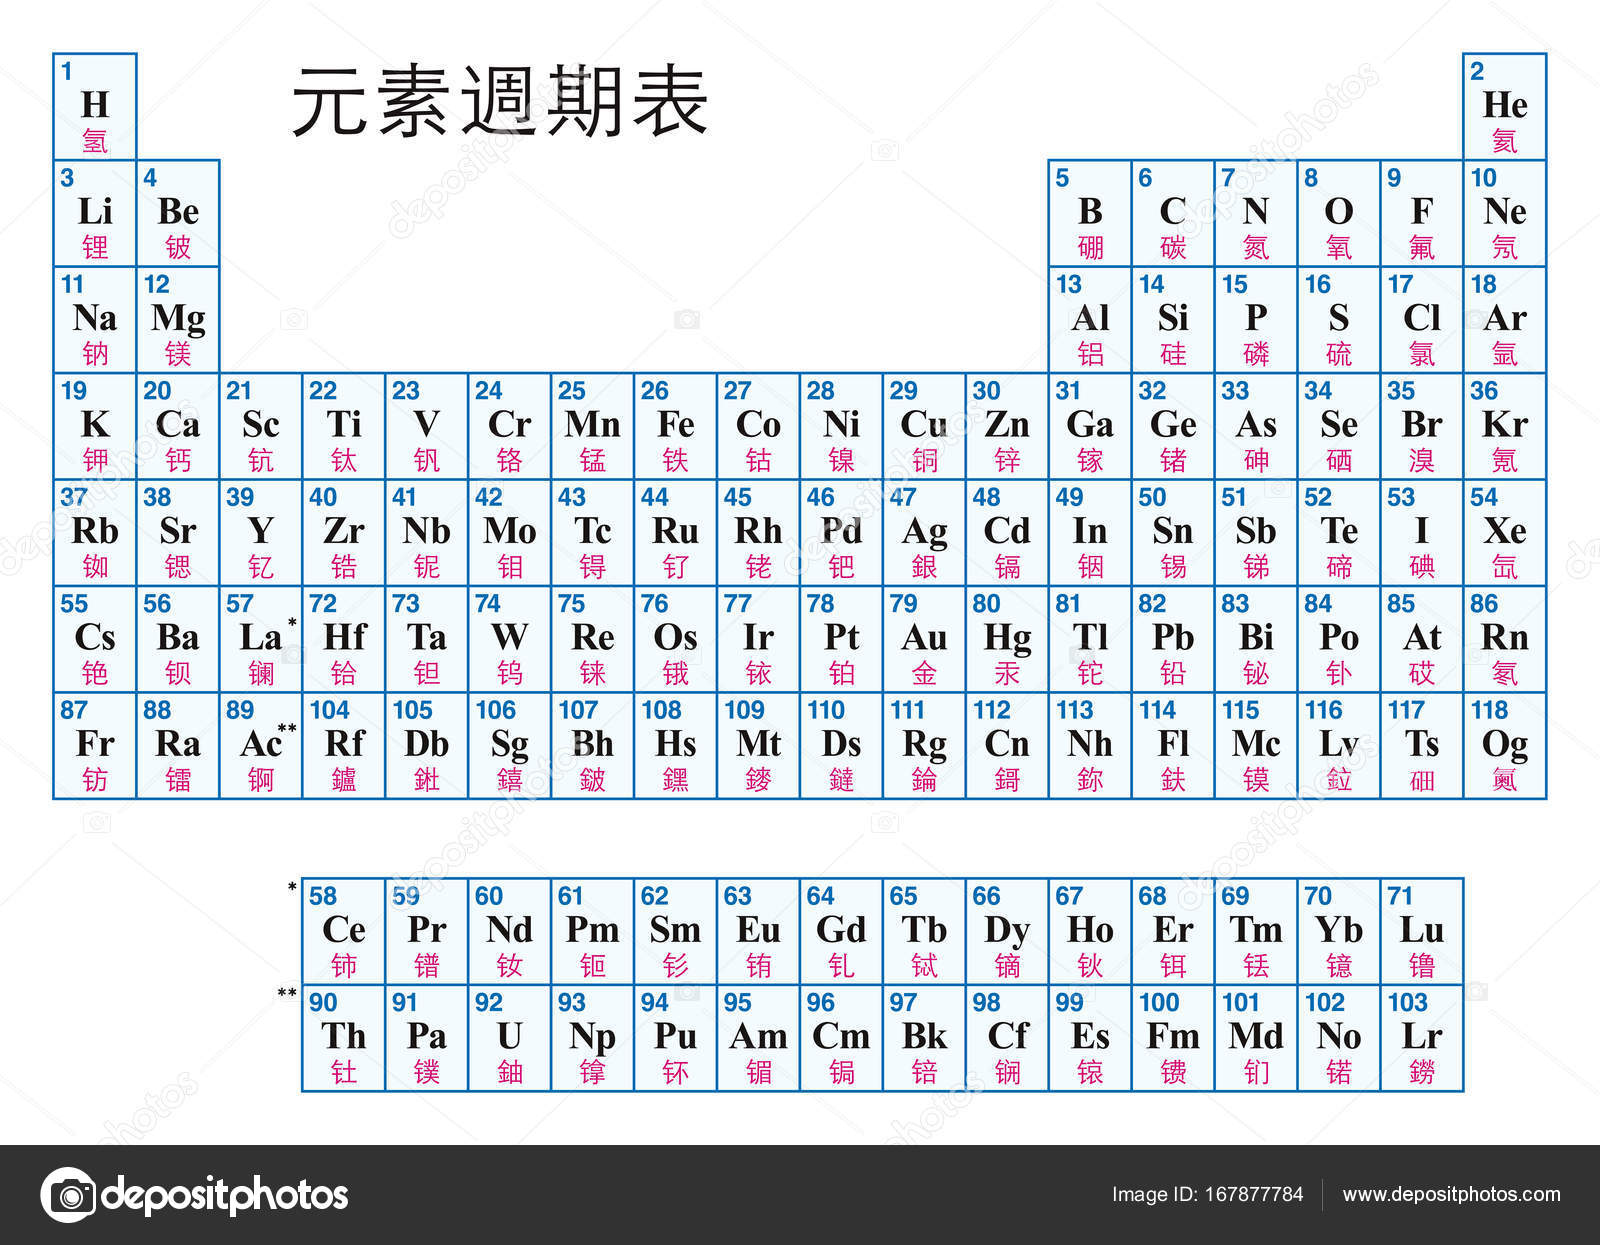 Periodic table of the elements chinese stock vector furian periodic table of the elements chinese tabular arrangement of the chemical elements with their atomic numbers symbols and names urtaz Choice Image